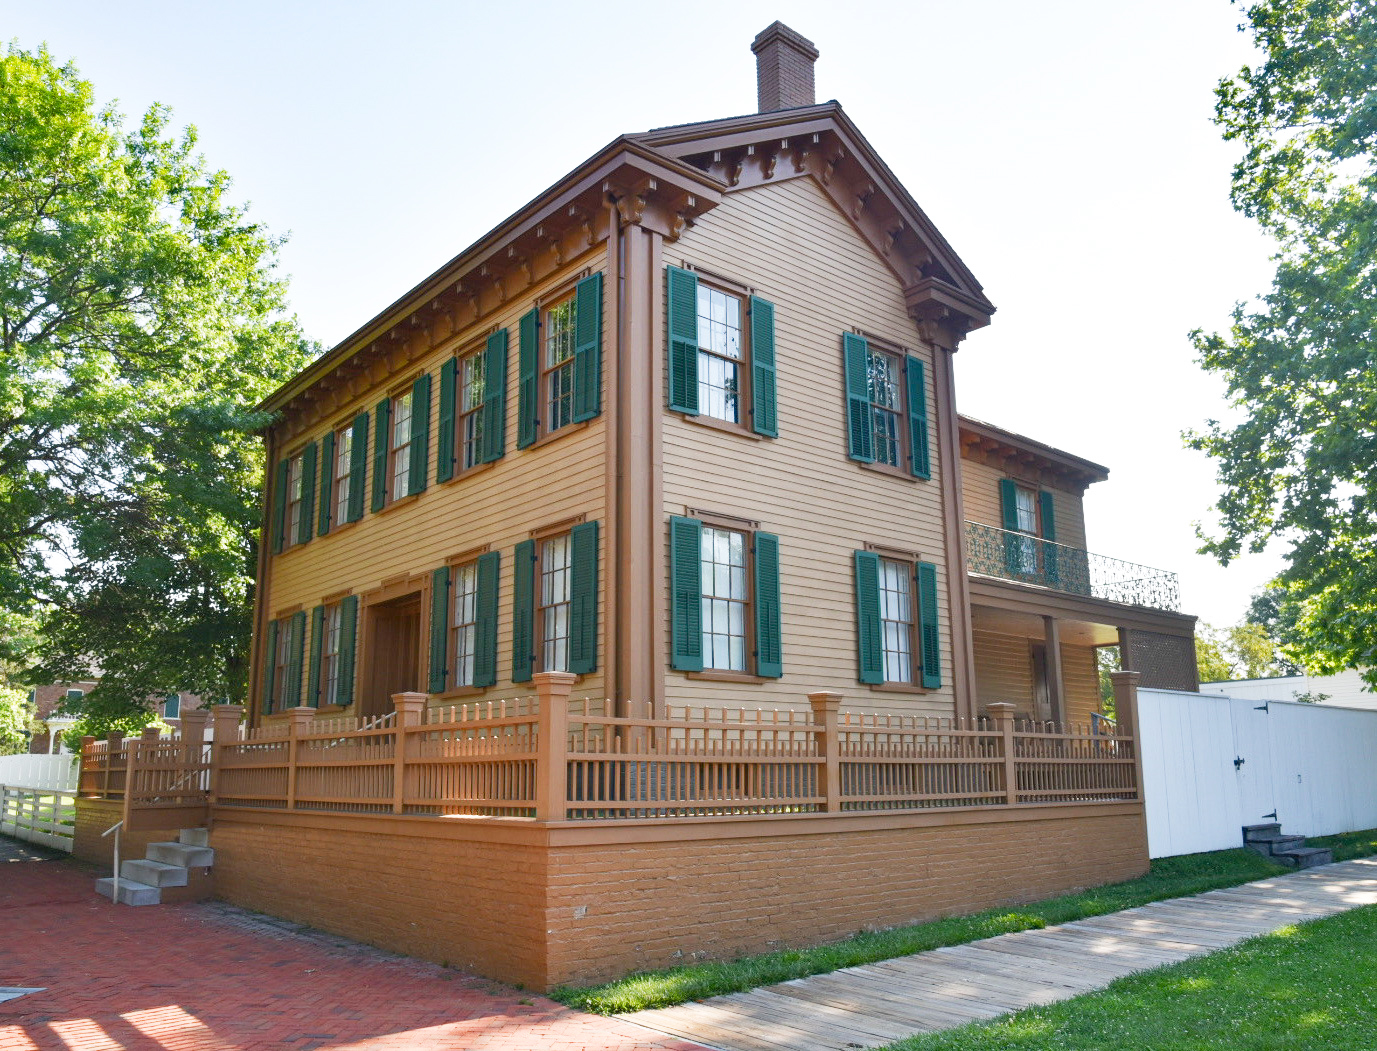 Abraham and Mary Todd Lincoln's Home